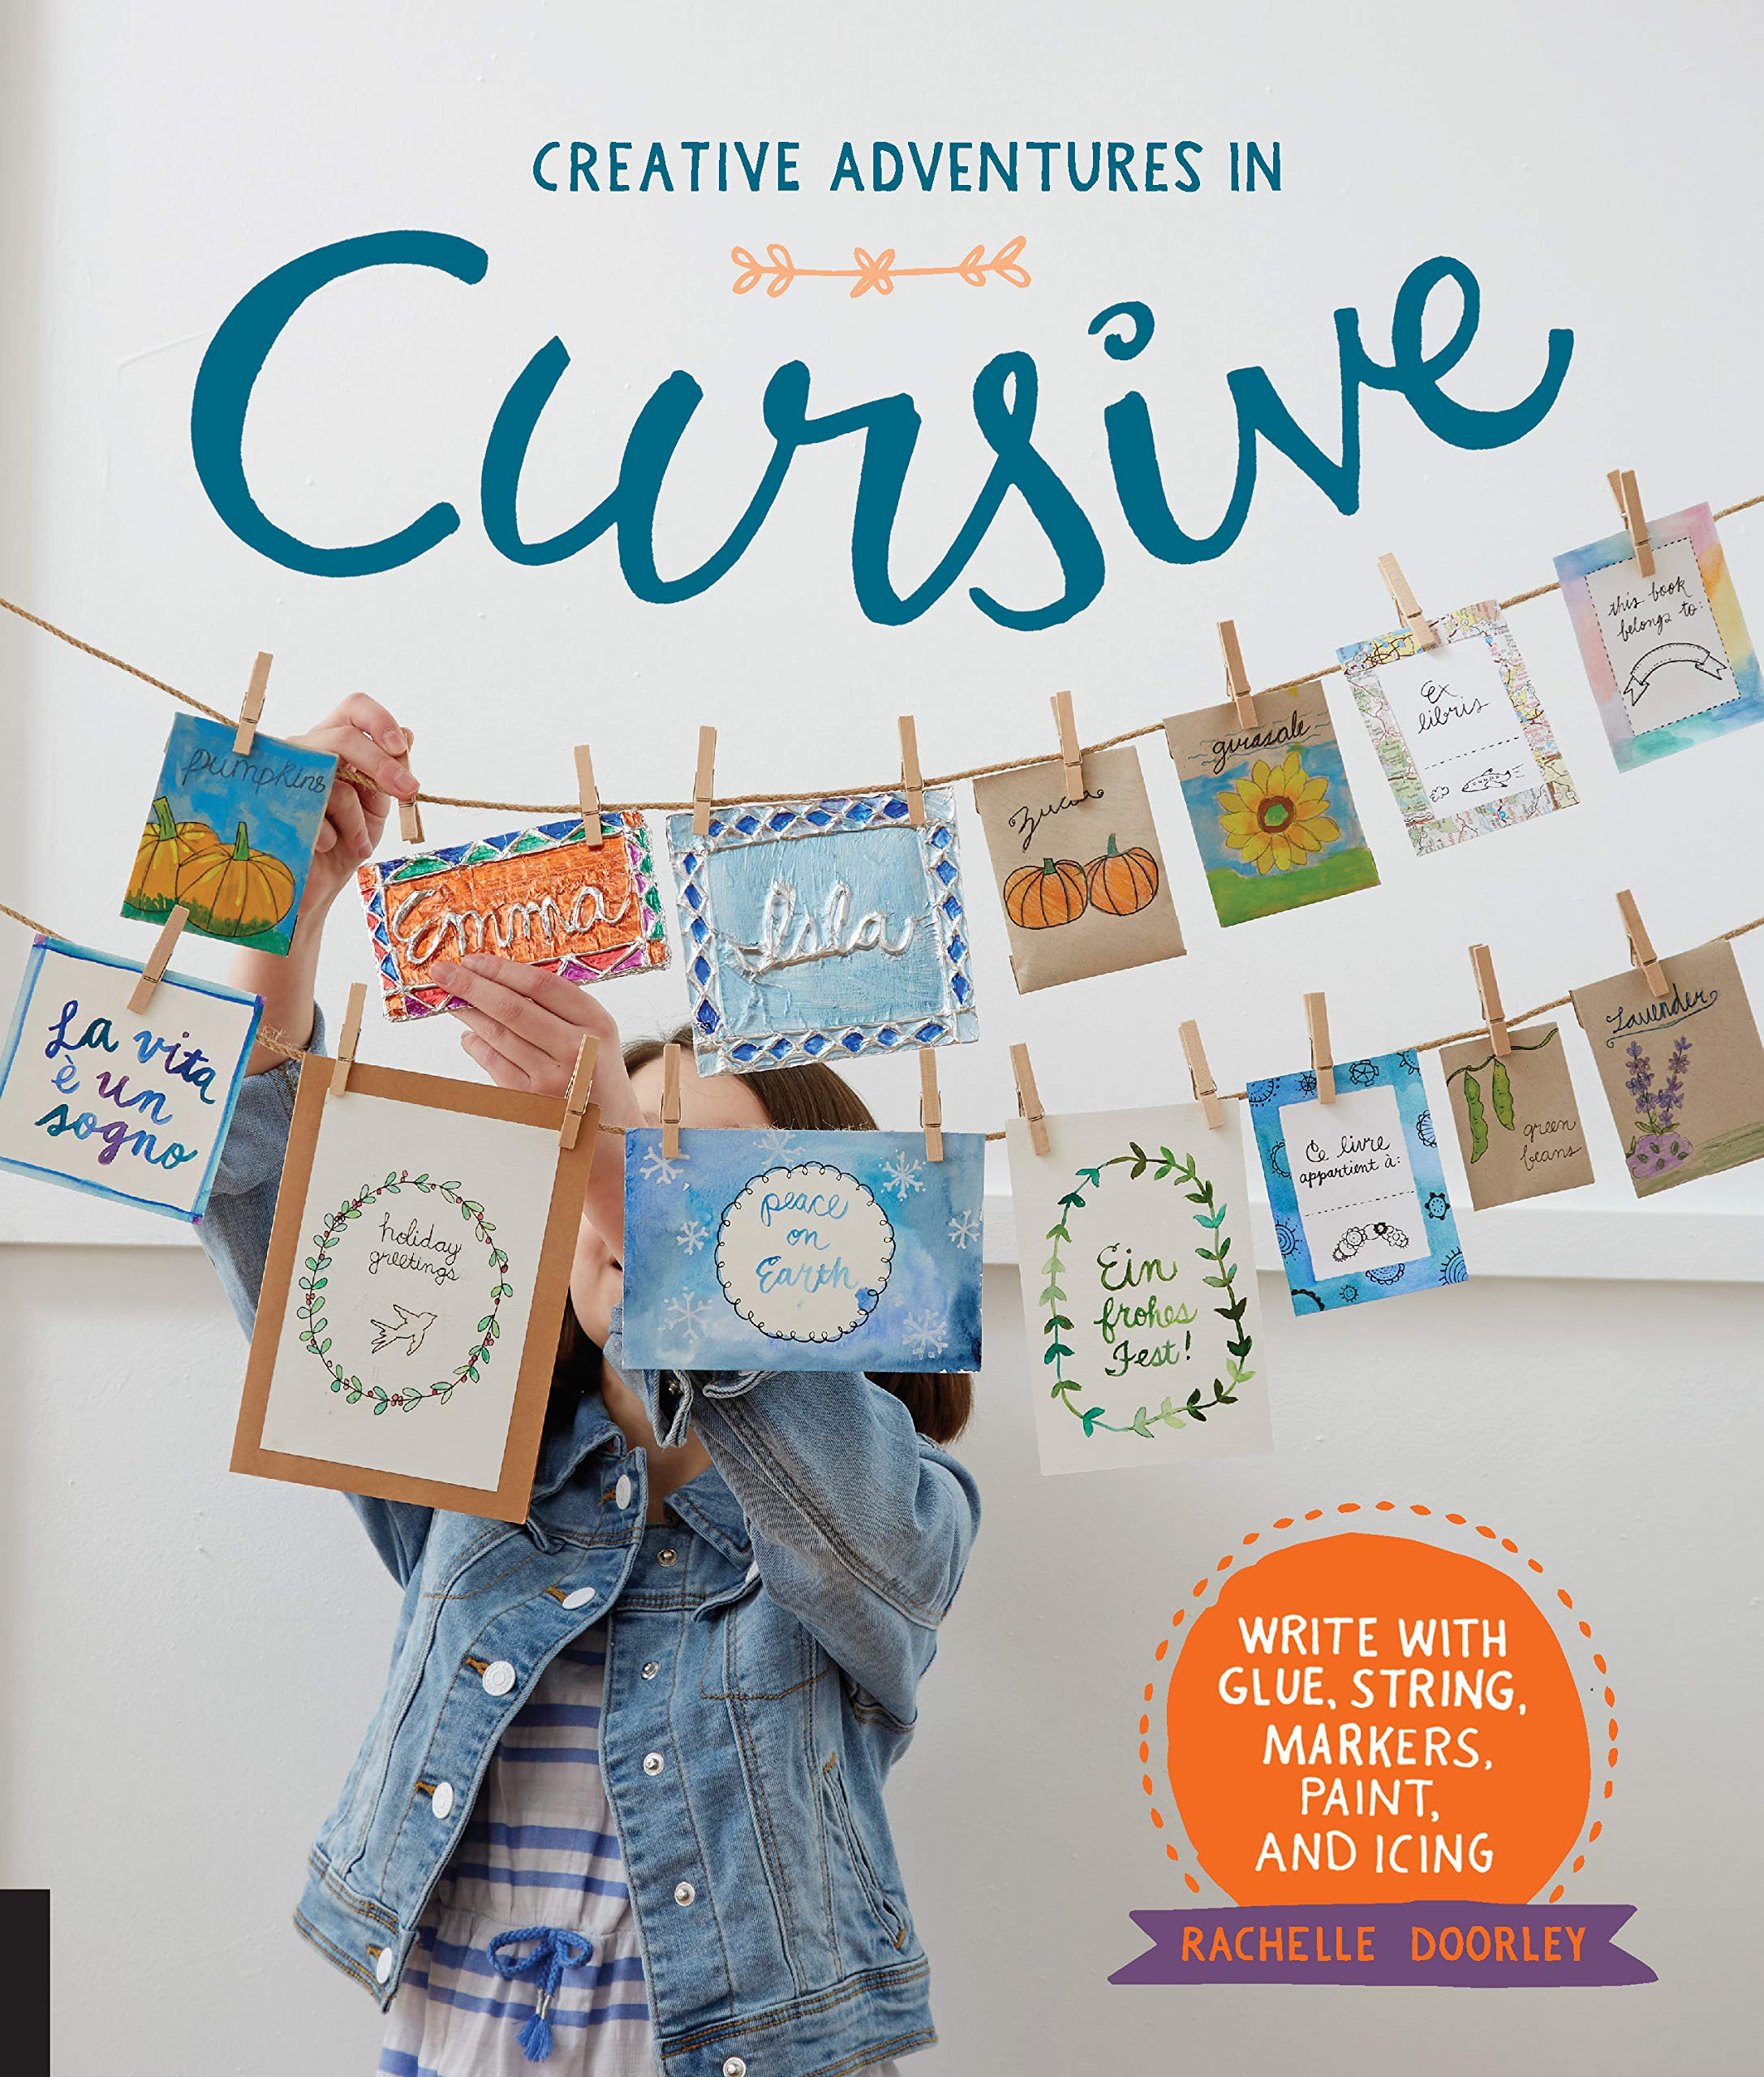 Creative Adventures in Cursive: Write with glue, string, markers, paint, and icing!